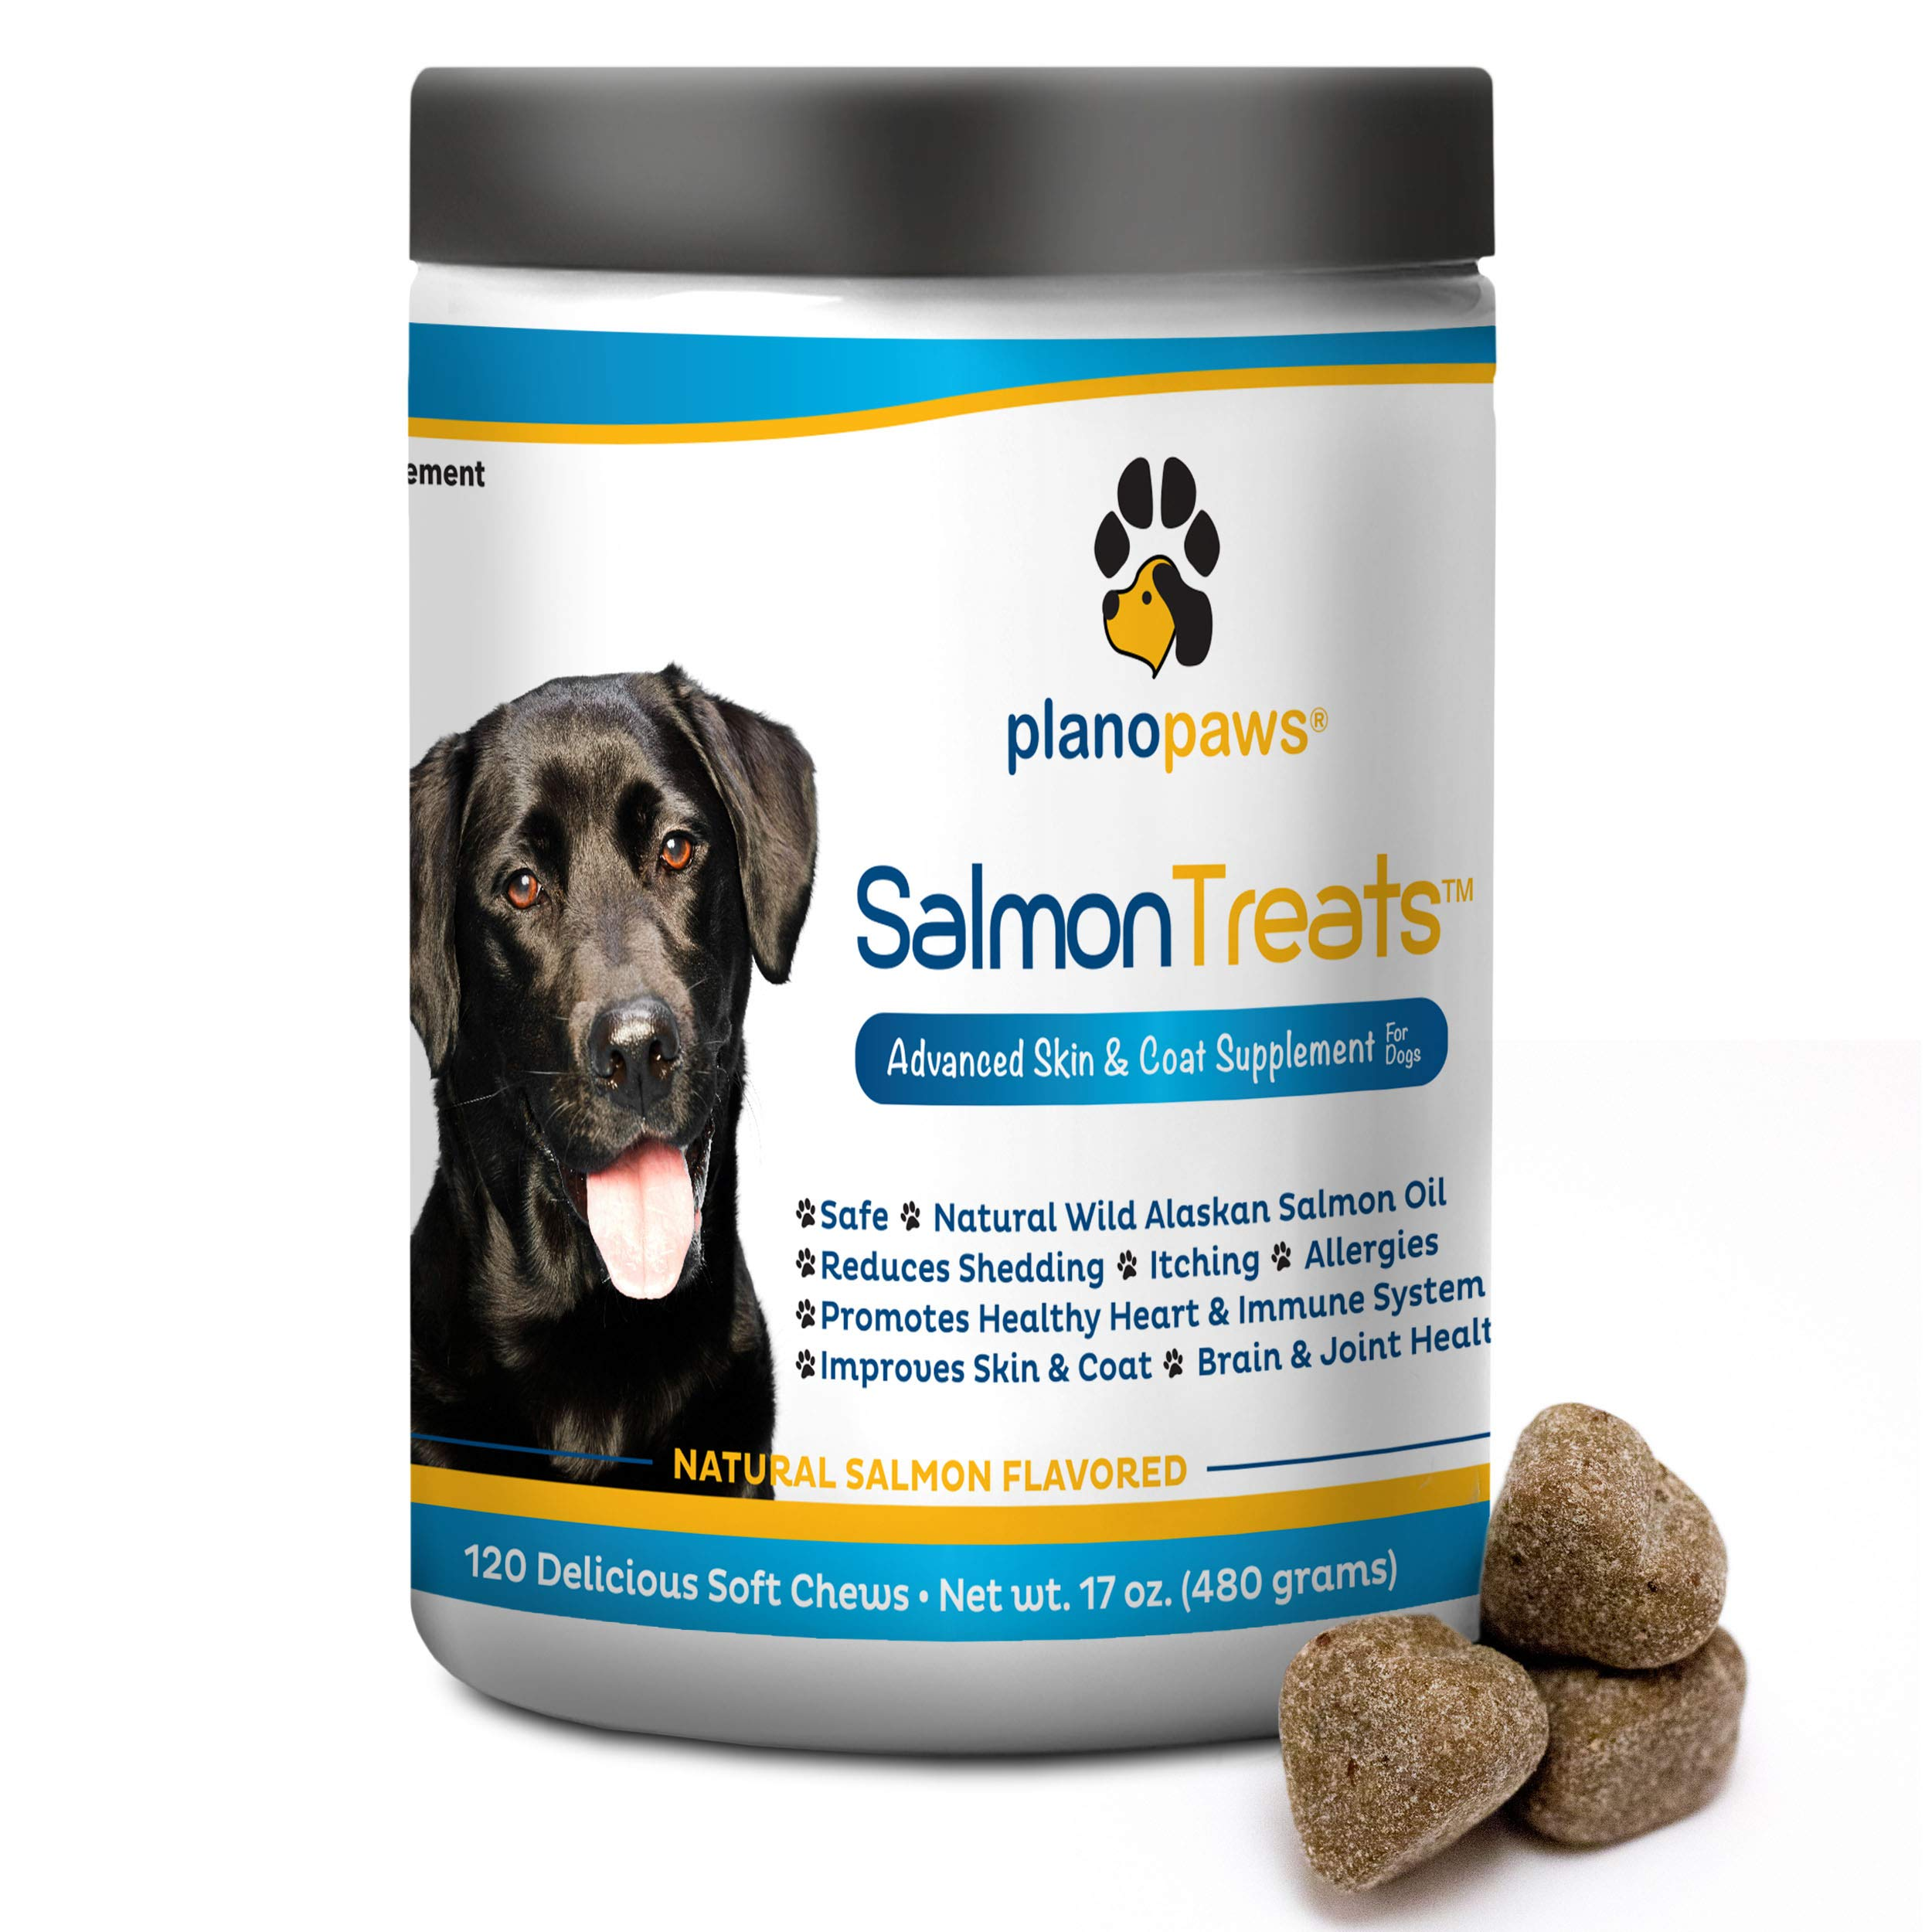 Salmon Oil for Dogs - Omega 3 Fish Oil for Dogs - Itching Skin Relief - Dog Allergy Relief Medicine - Improves Shedding Itchy Dog Skin - 120 Dog Fish Oil Treats - Natural Wild Alaskan Salmon Oil Chews by planopaws